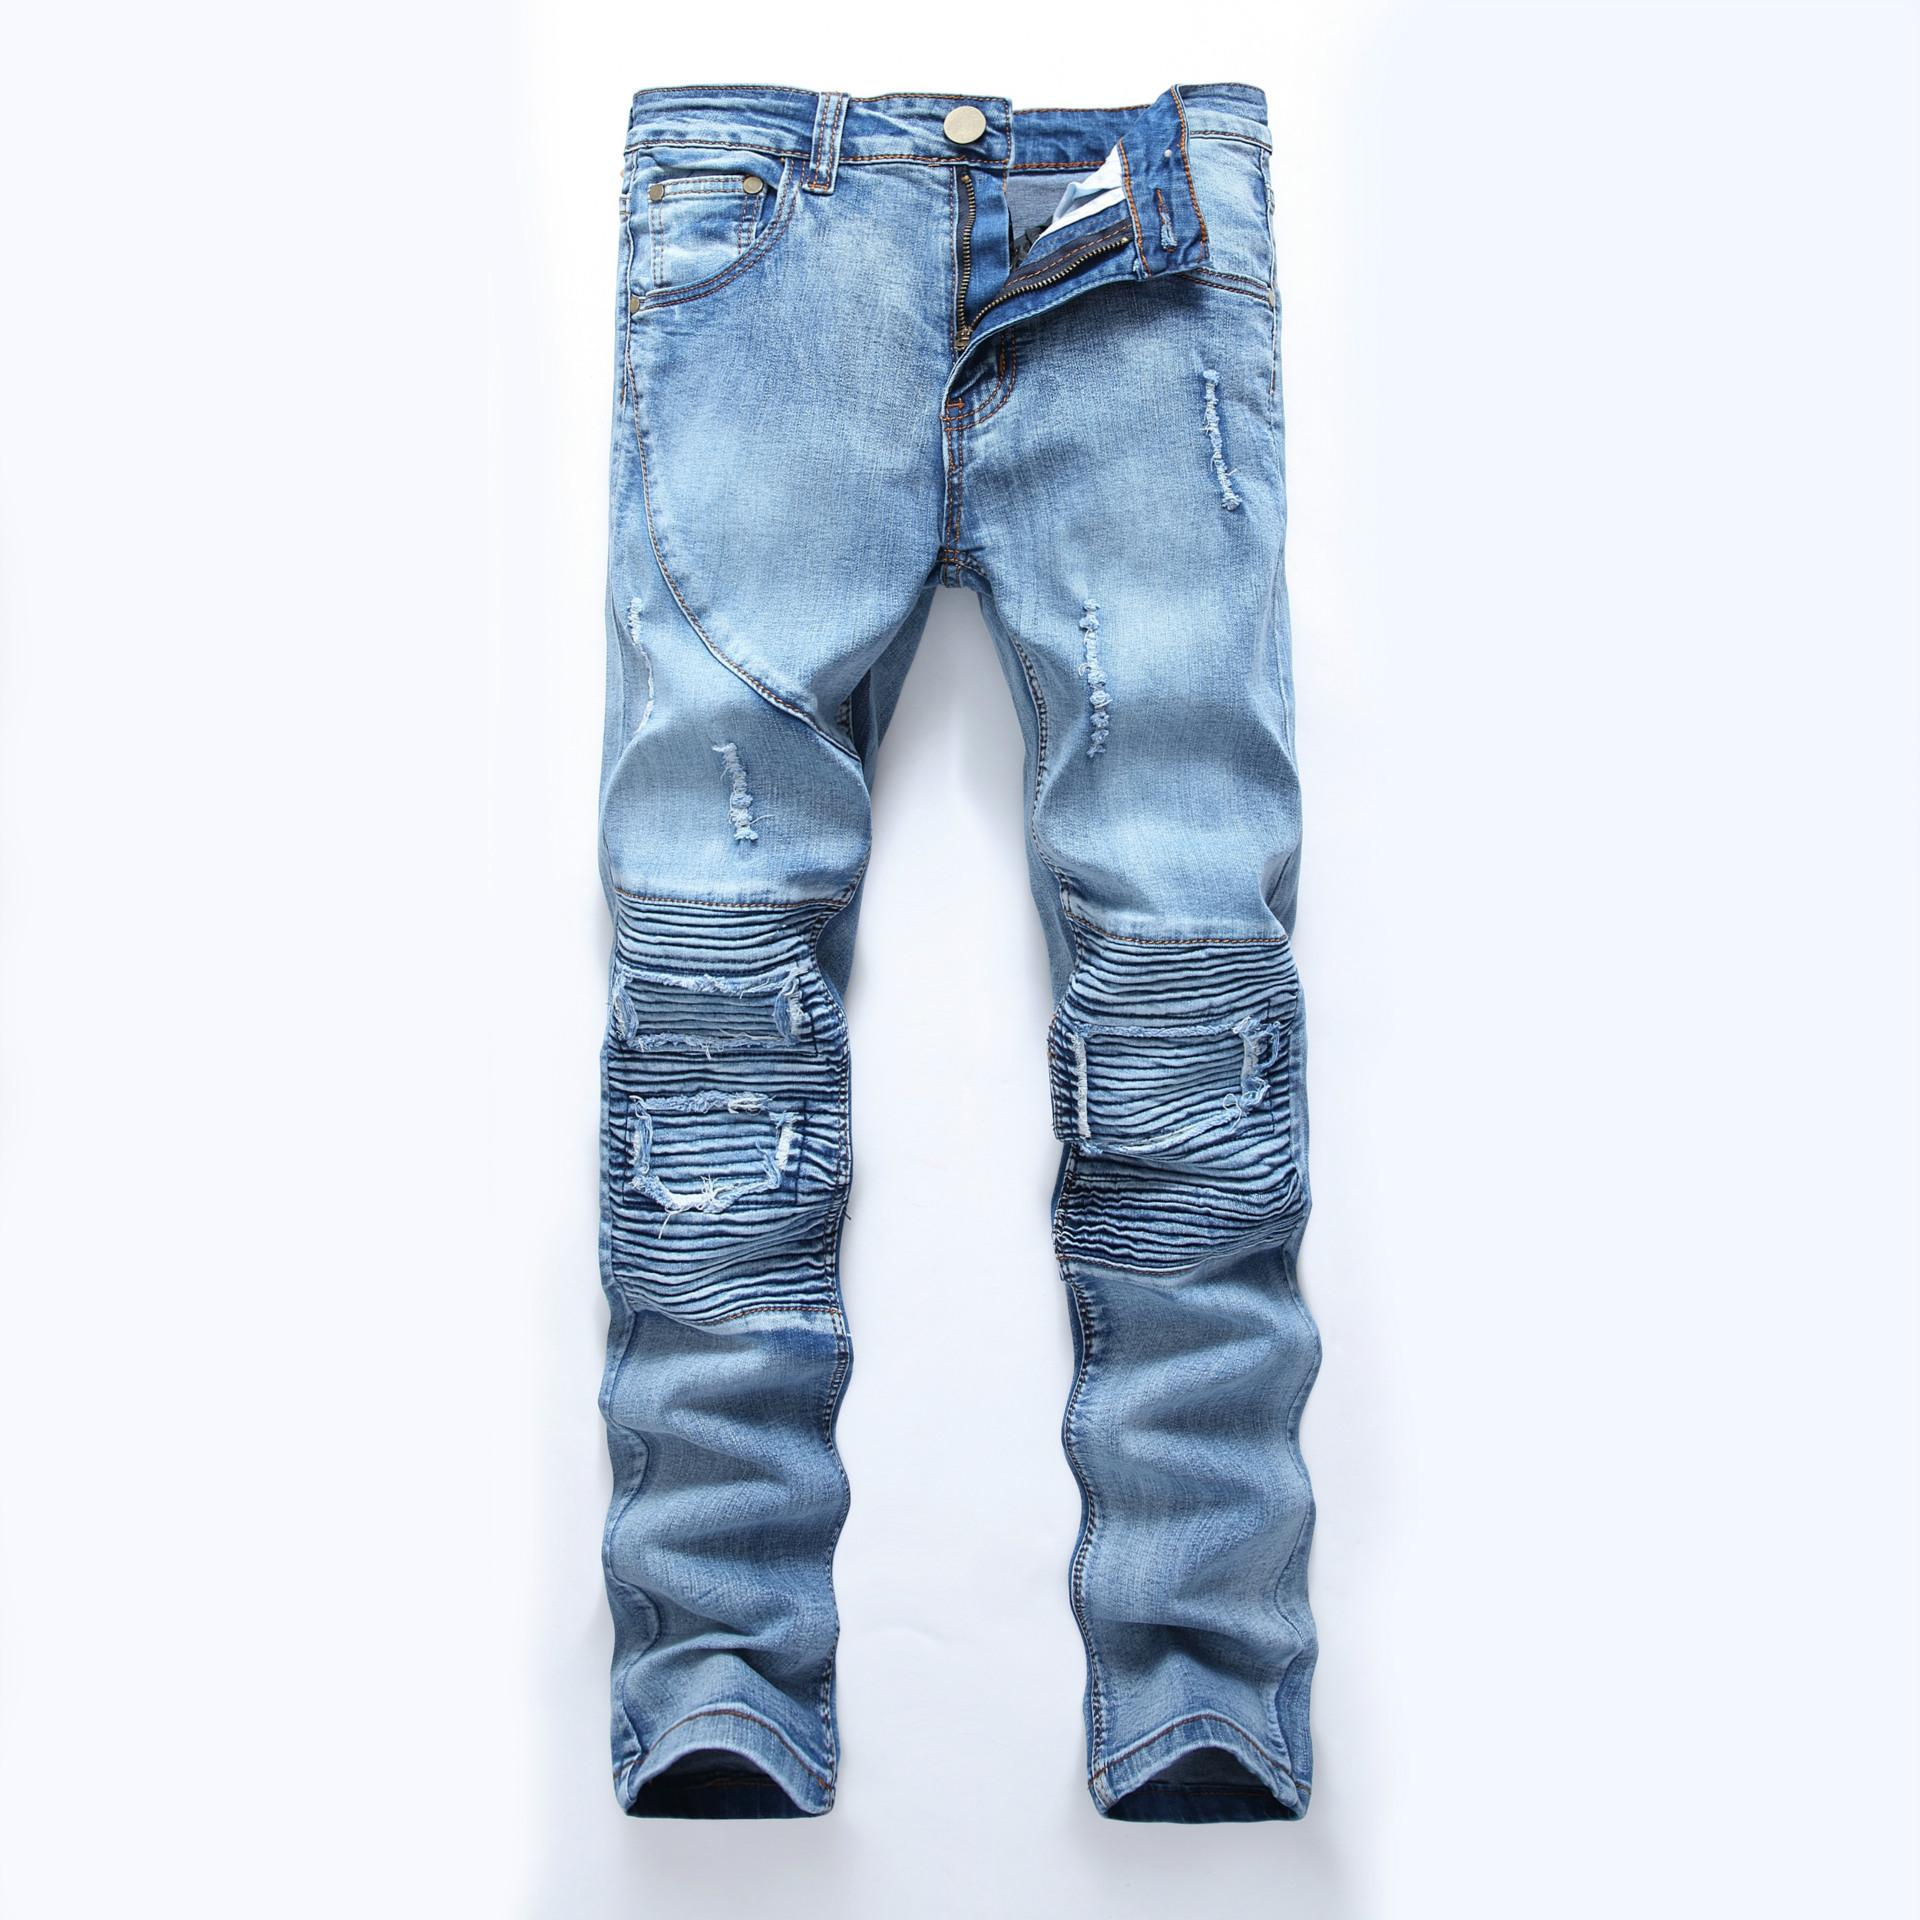 0cc3e1b5ea09 Hole Pockets Jeans Pants Men Casual Fashion Denim Trousers High Street Jeans  Homme Plus Size Online with $77.73/Piece on Clothesg202's Store | DHgate.com